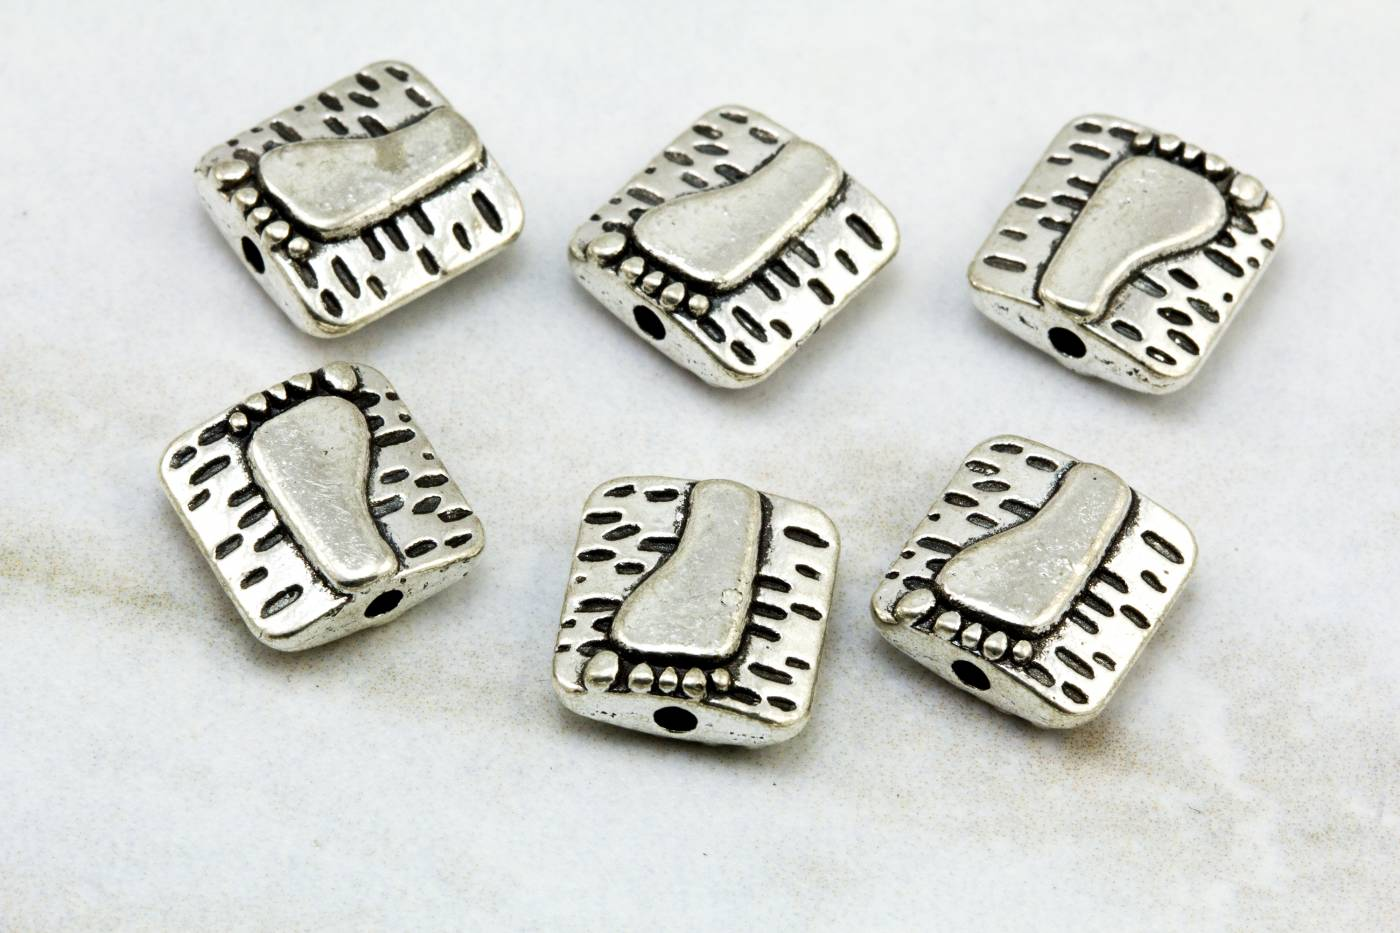 footprint-metal-flat-square-charms.jpg